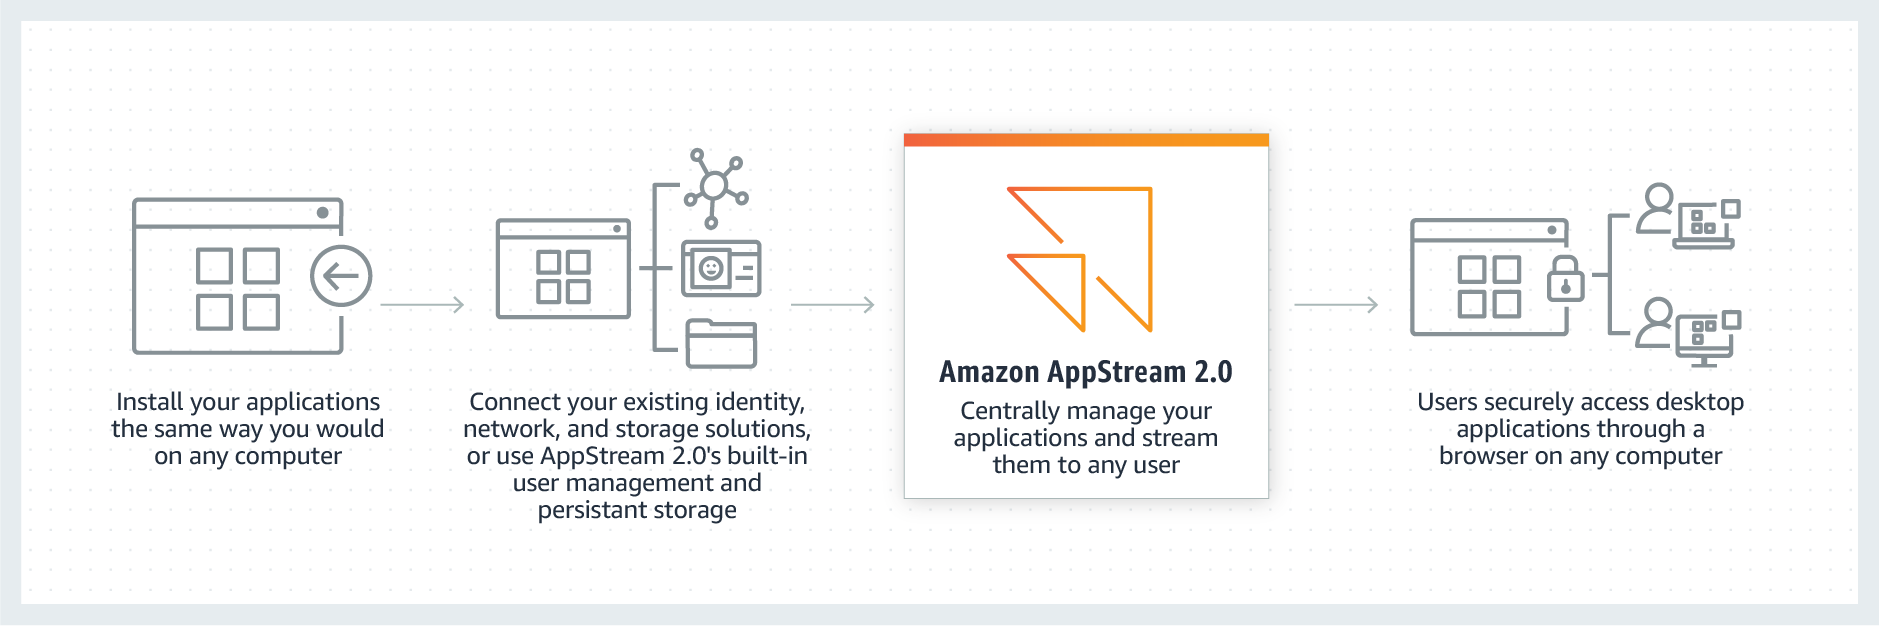 Amazon AppStream 2 0 | fully managed application streaming